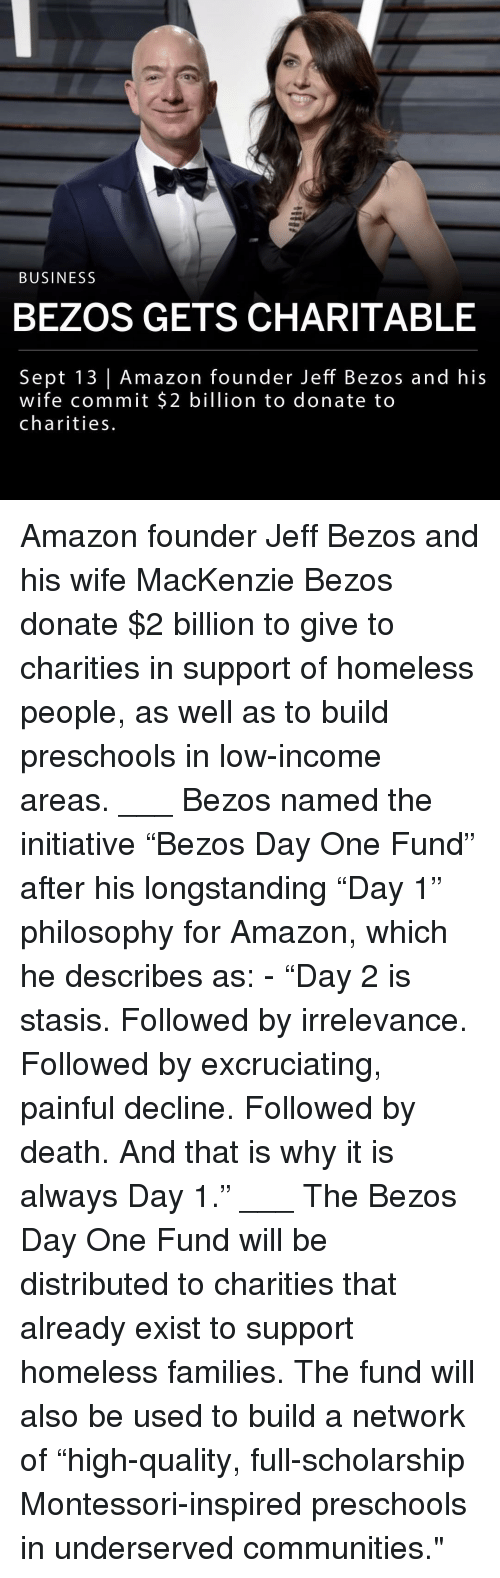 "Amazon, Homeless, and Jeff Bezos: BUSINESS  BEZOS GETS CHARITABLE  Sept 13 | Amazon founder Jeff Bezos and his  wife commit $2 billion to donate to  charities Amazon founder Jeff Bezos and his wife MacKenzie Bezos donate $2 billion to give to charities in support of homeless people, as well as to build preschools in low-income areas. ___ Bezos named the initiative ""Bezos Day One Fund"" after his longstanding ""Day 1"" philosophy for Amazon, which he describes as: - ""Day 2 is stasis. Followed by irrelevance. Followed by excruciating, painful decline. Followed by death. And that is why it is always Day 1."" ___ The Bezos Day One Fund will be distributed to charities that already exist to support homeless families. The fund will also be used to build a network of ""high-quality, full-scholarship Montessori-inspired preschools in underserved communities."""